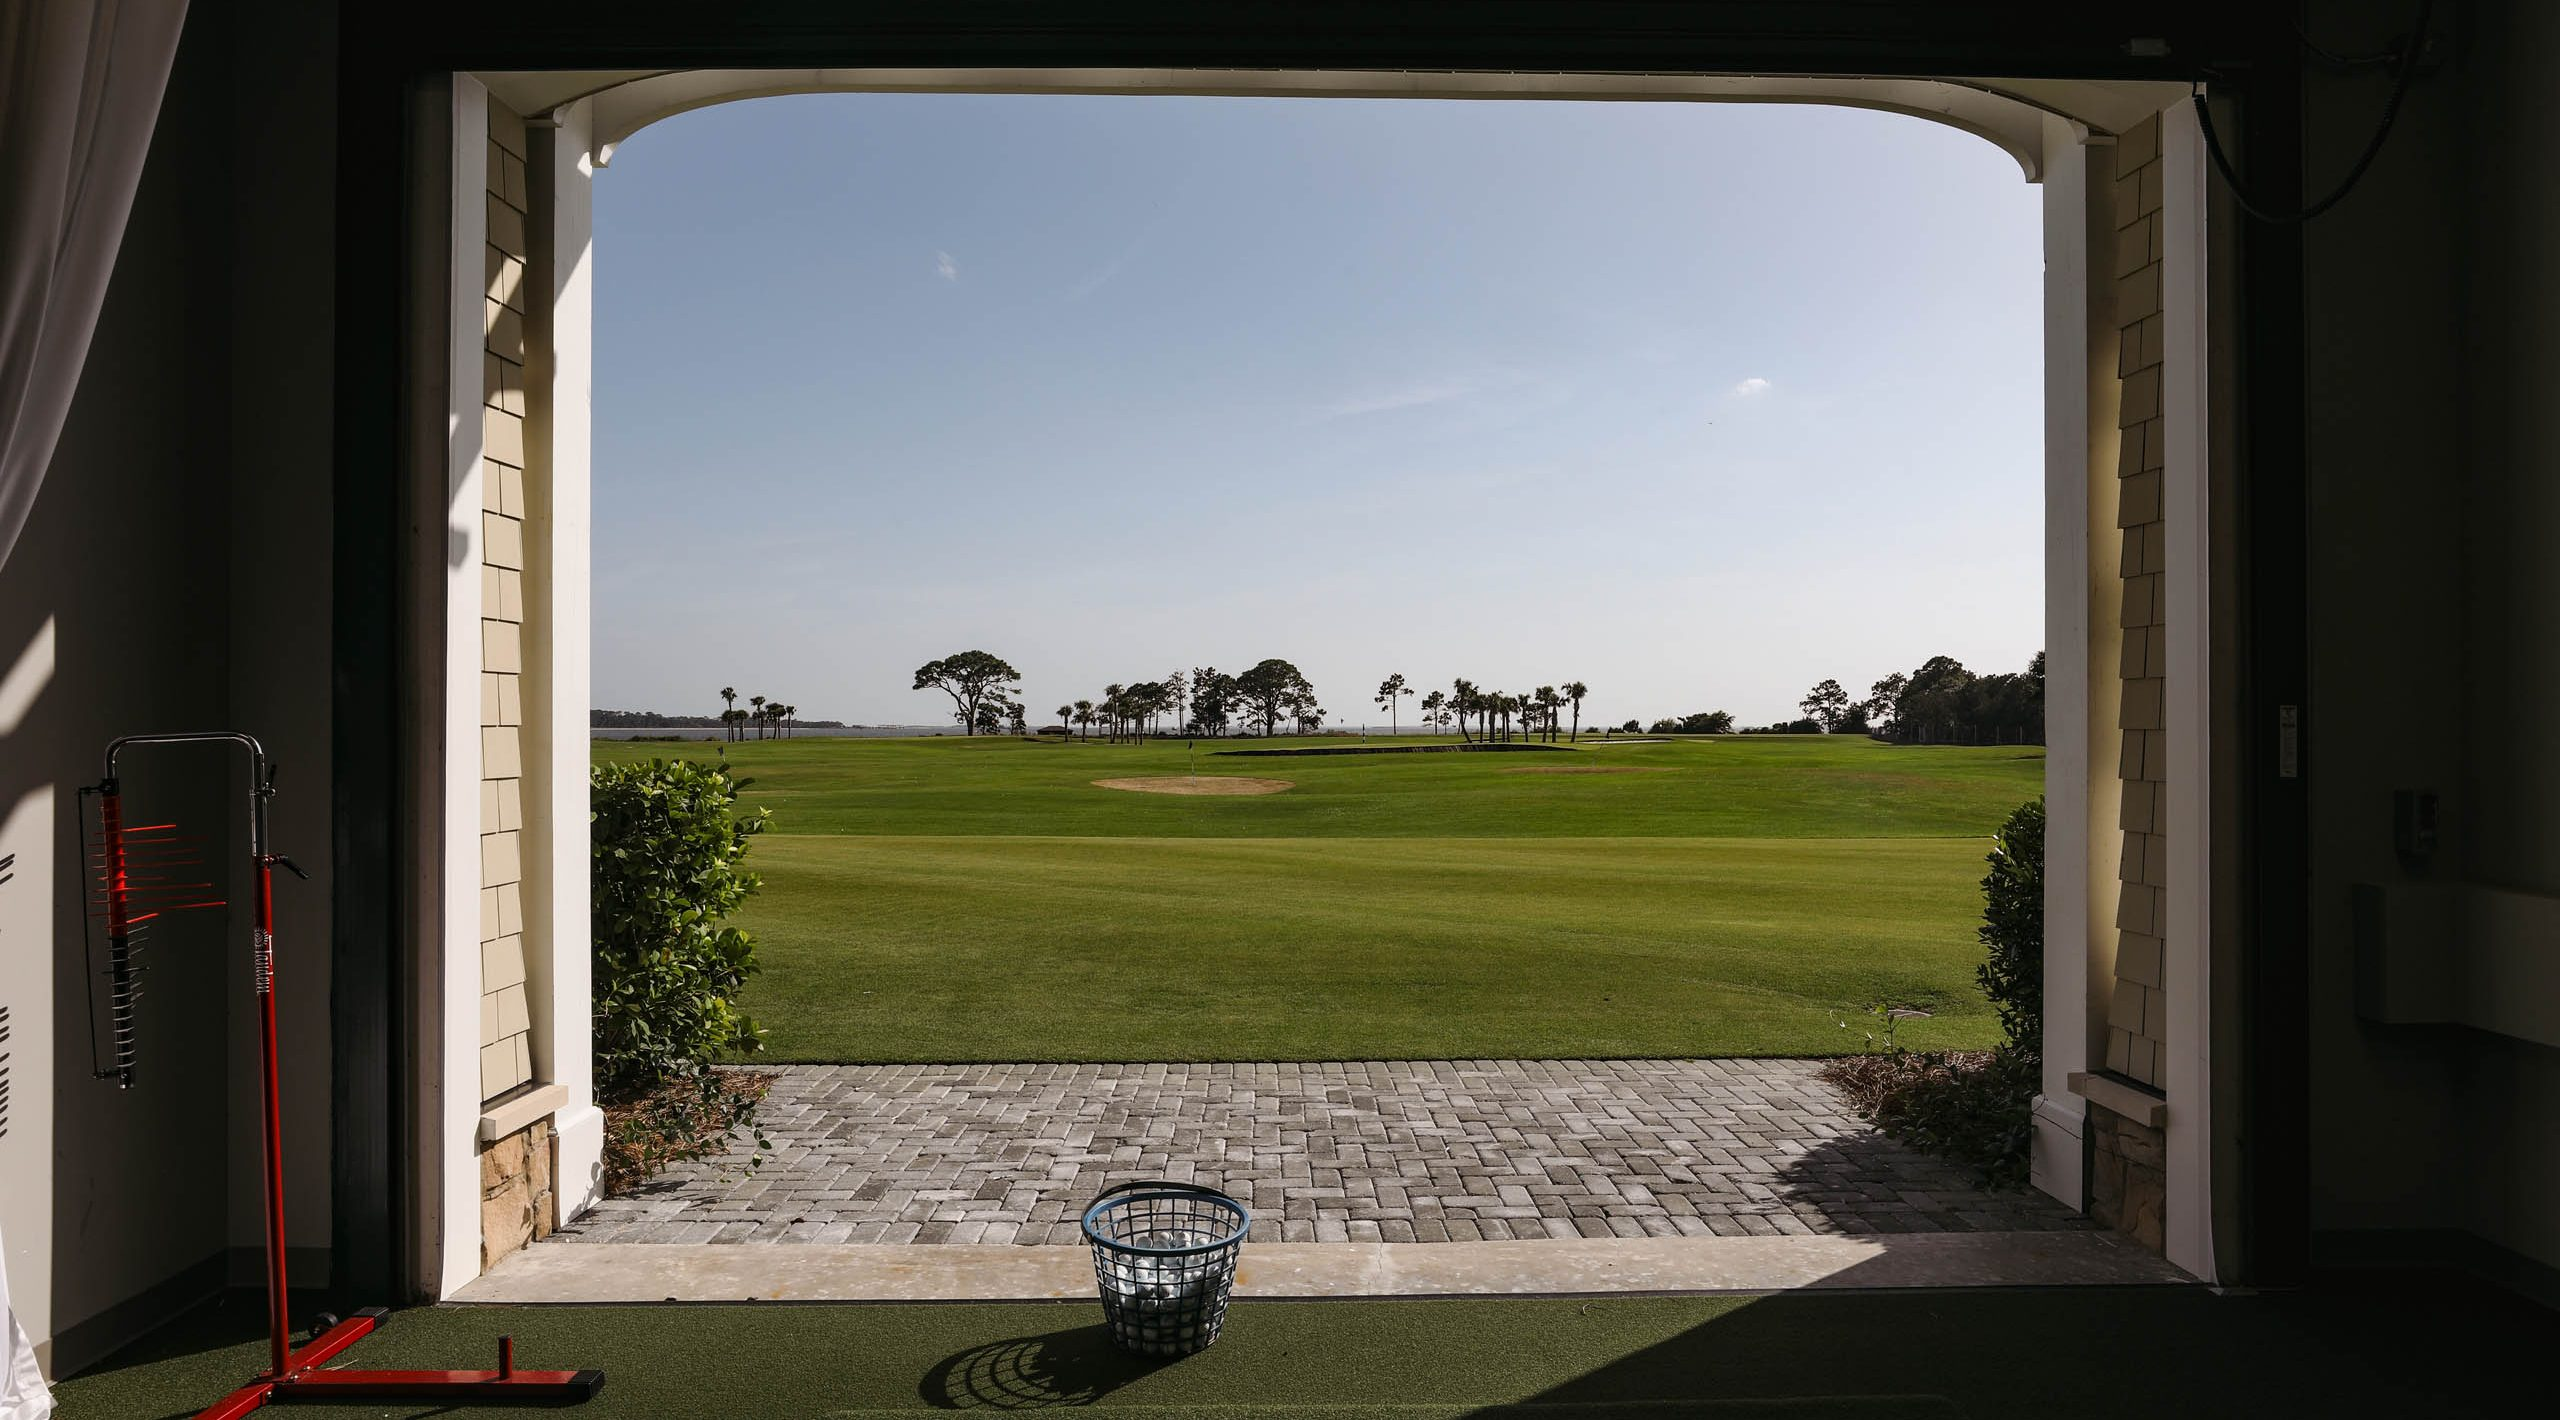 The hitting bays, and driving range at the new Golf Performance Center at Sea Island.